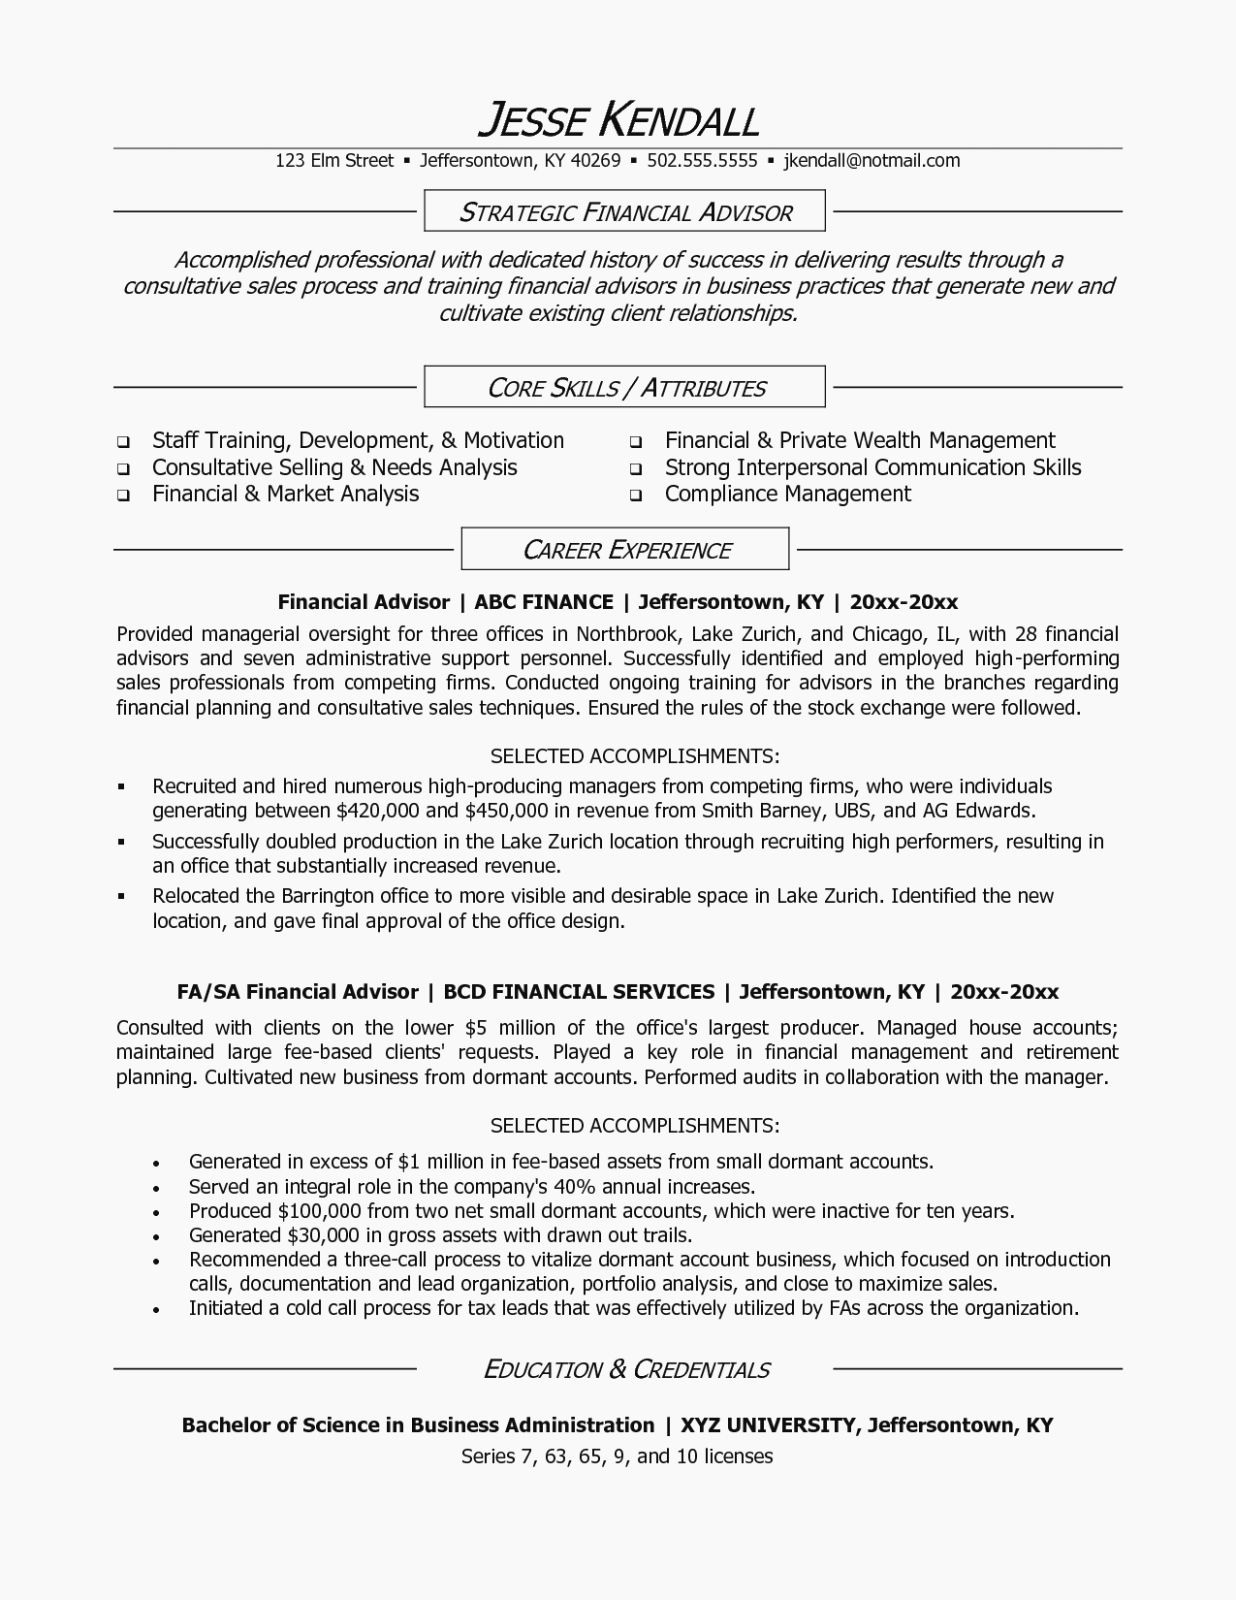 Academic Advisor Resume Examples Best Of 15 Taboos About Academic Resume Skills Project Manager Resume Resume Examples